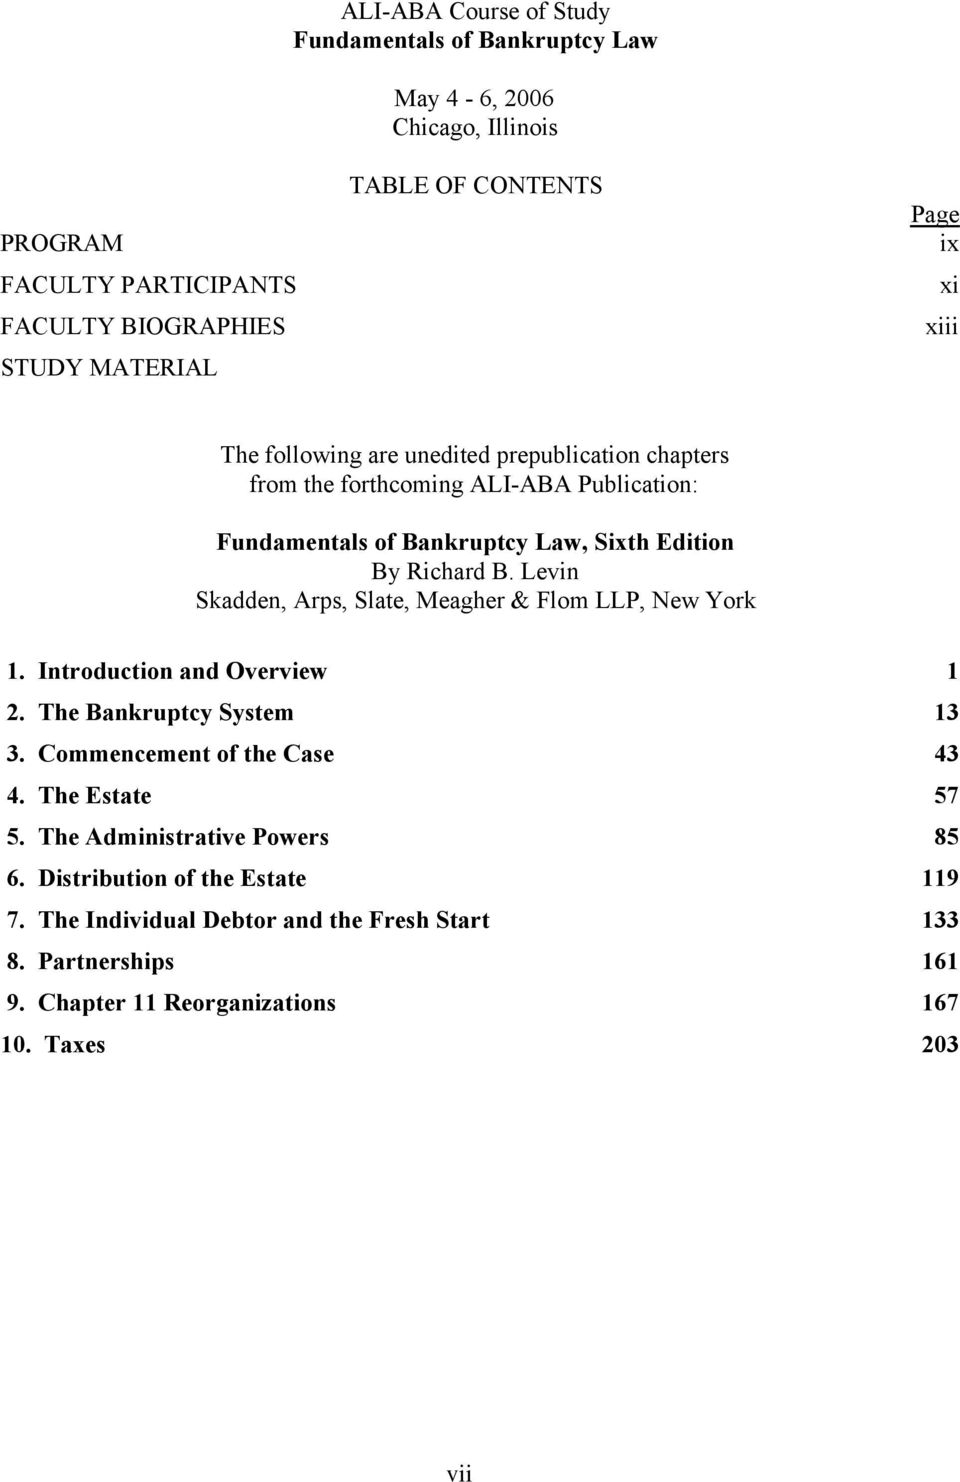 Levin Skadden, Arps, Slate, Meagher & Flom LLP, New York 1. Introduction and Overview 1 2. The Bankruptcy System 13 3. Commencement of the Case 43 4. The Estate 57 5.